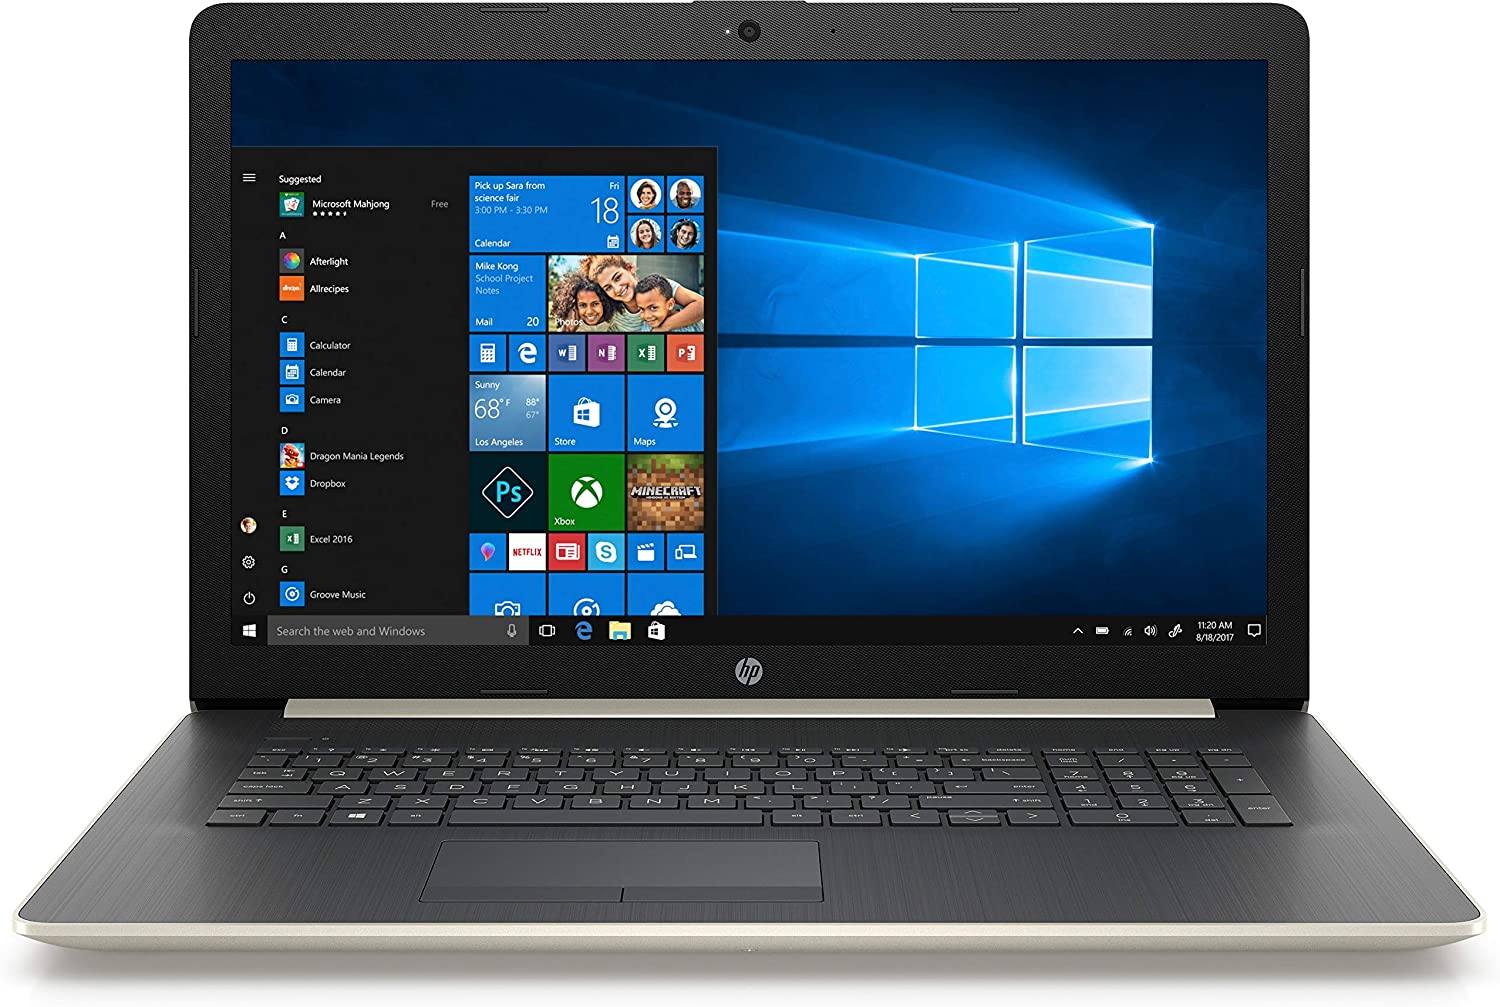 "2018 Newest HP 17.3"" HD+ Notebook, Intel Core i5-8250U Processor, 24GB Memory: 16GB Intel Optane + 8GB RAM, 2TB Hard Drive, Optical Drive, HD Webcam, Backlit Keyboard, Windows 10,"